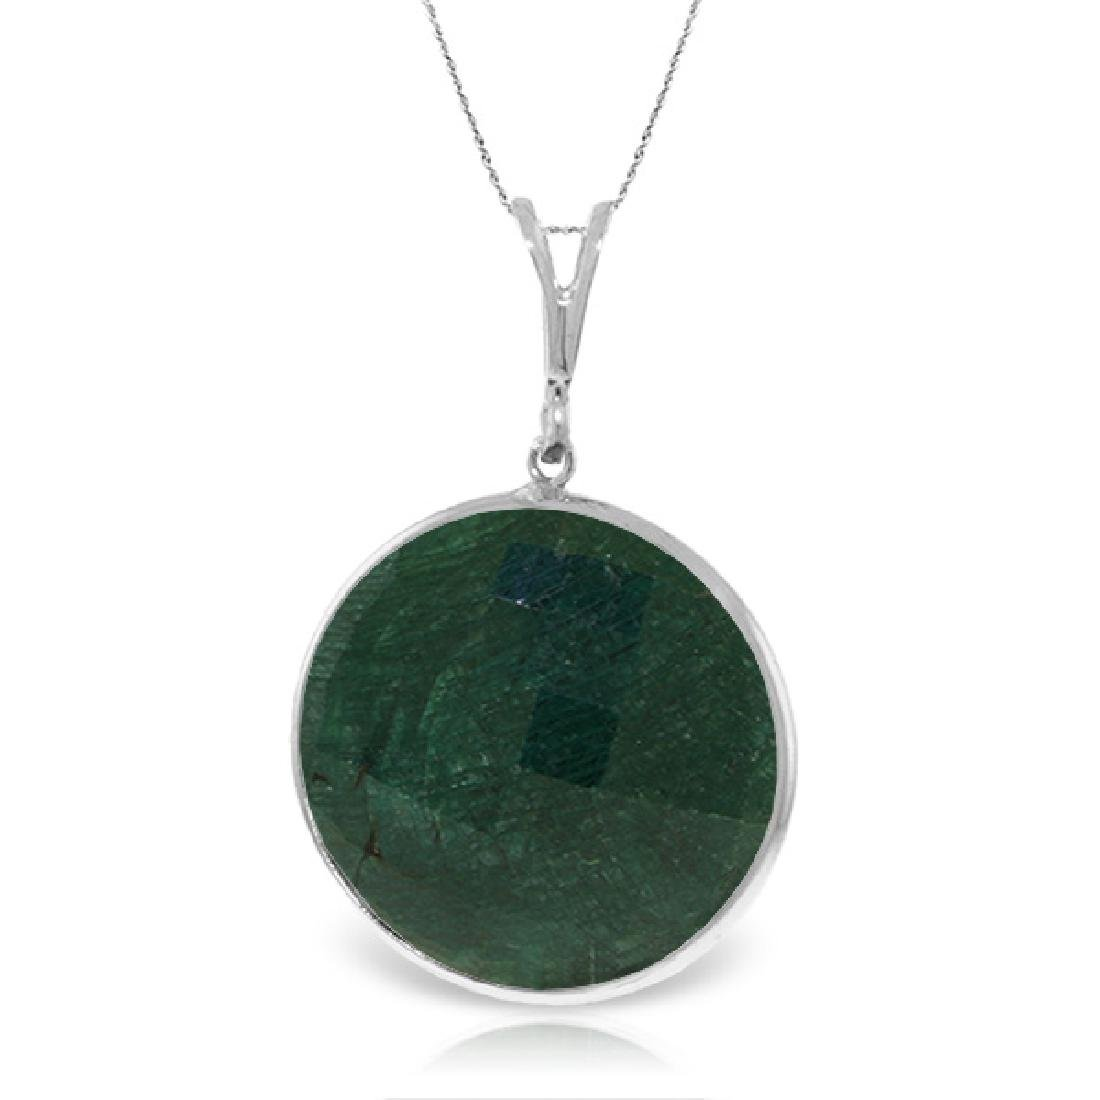 Genuine 23 ctw Green Sapphire Corundum Necklace Jewelry